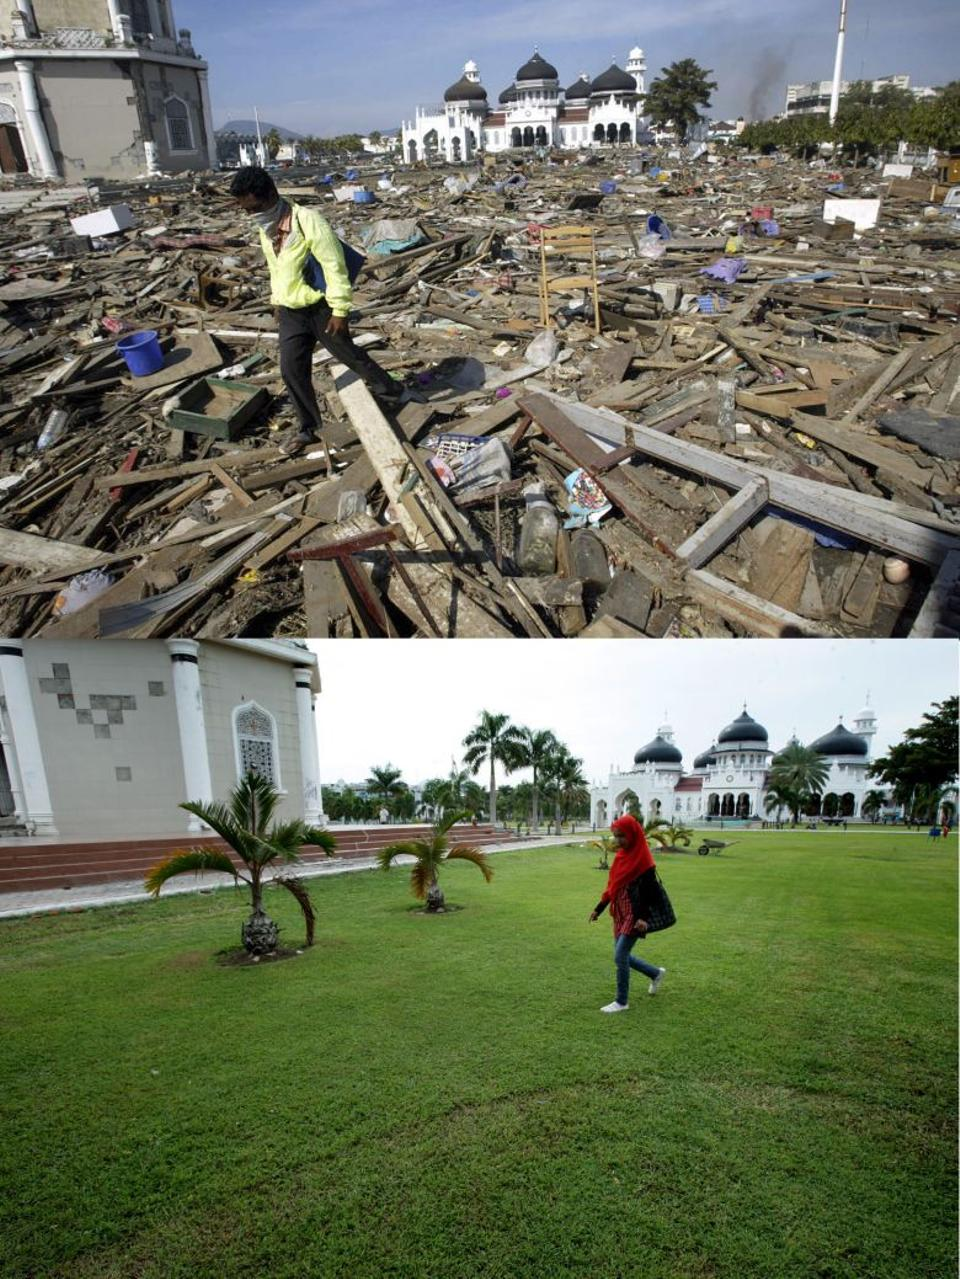 List Of Natural Disasters In Developing Countries